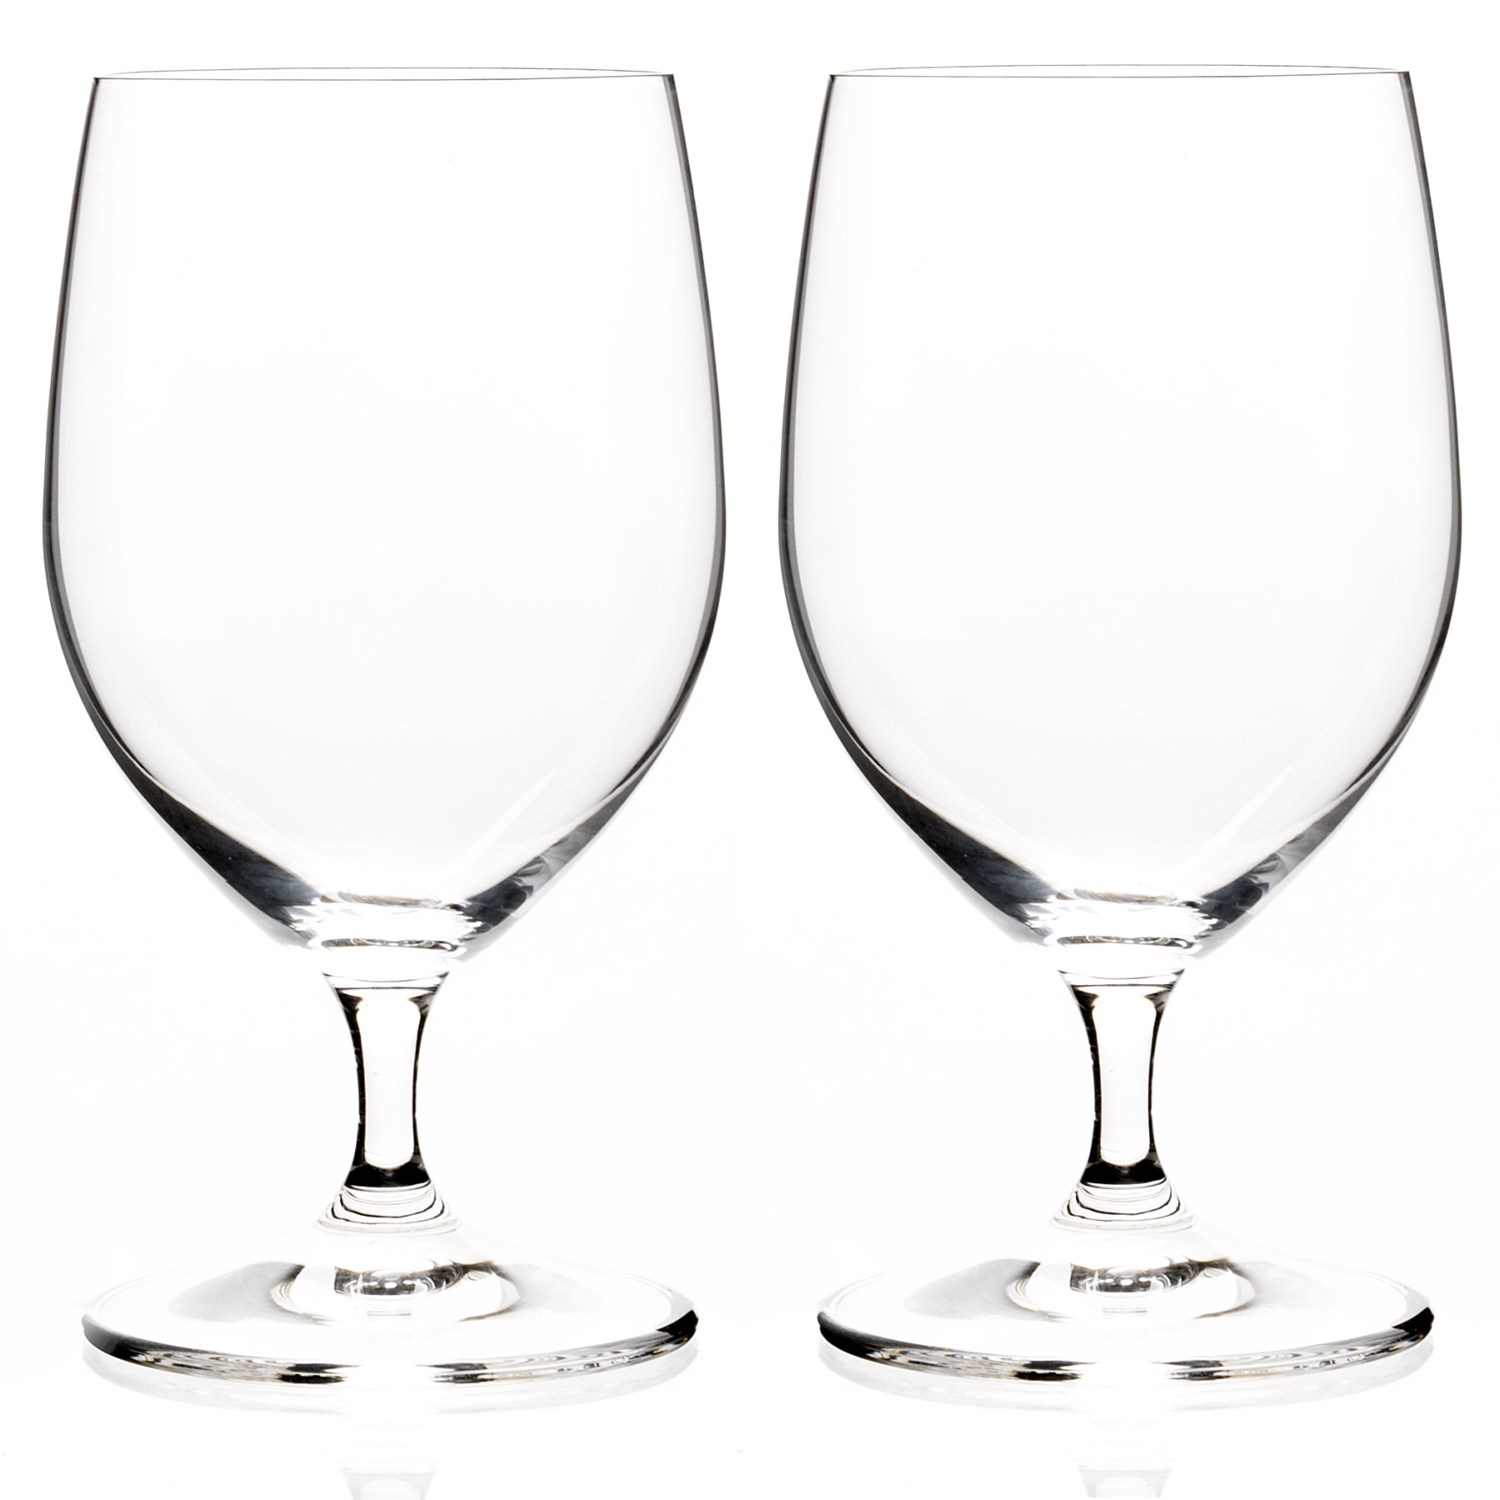 click to expand - Water Goblets